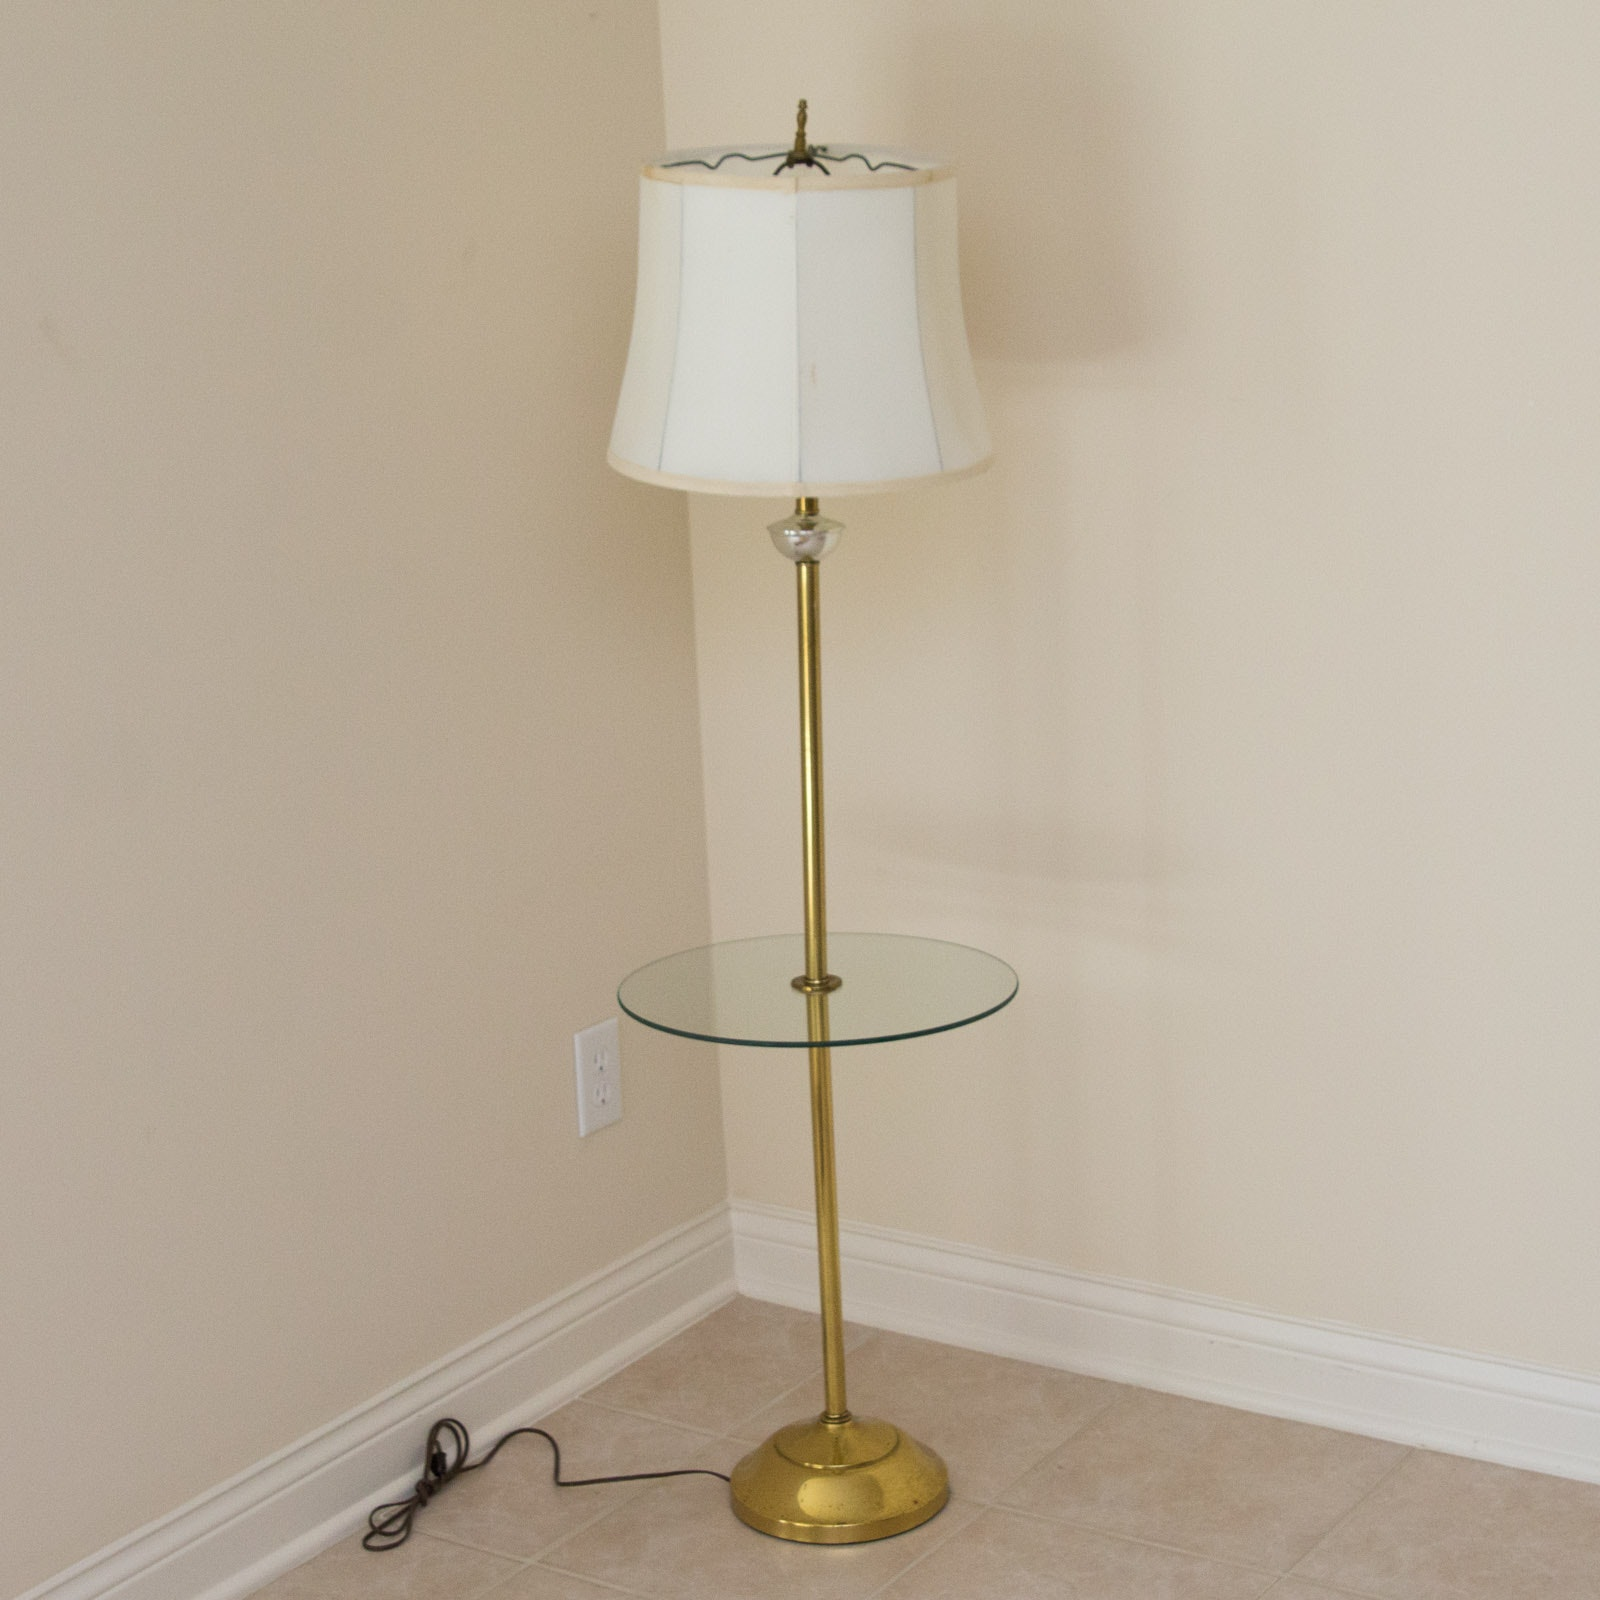 Vintage Glass and Brass Floor Lamp